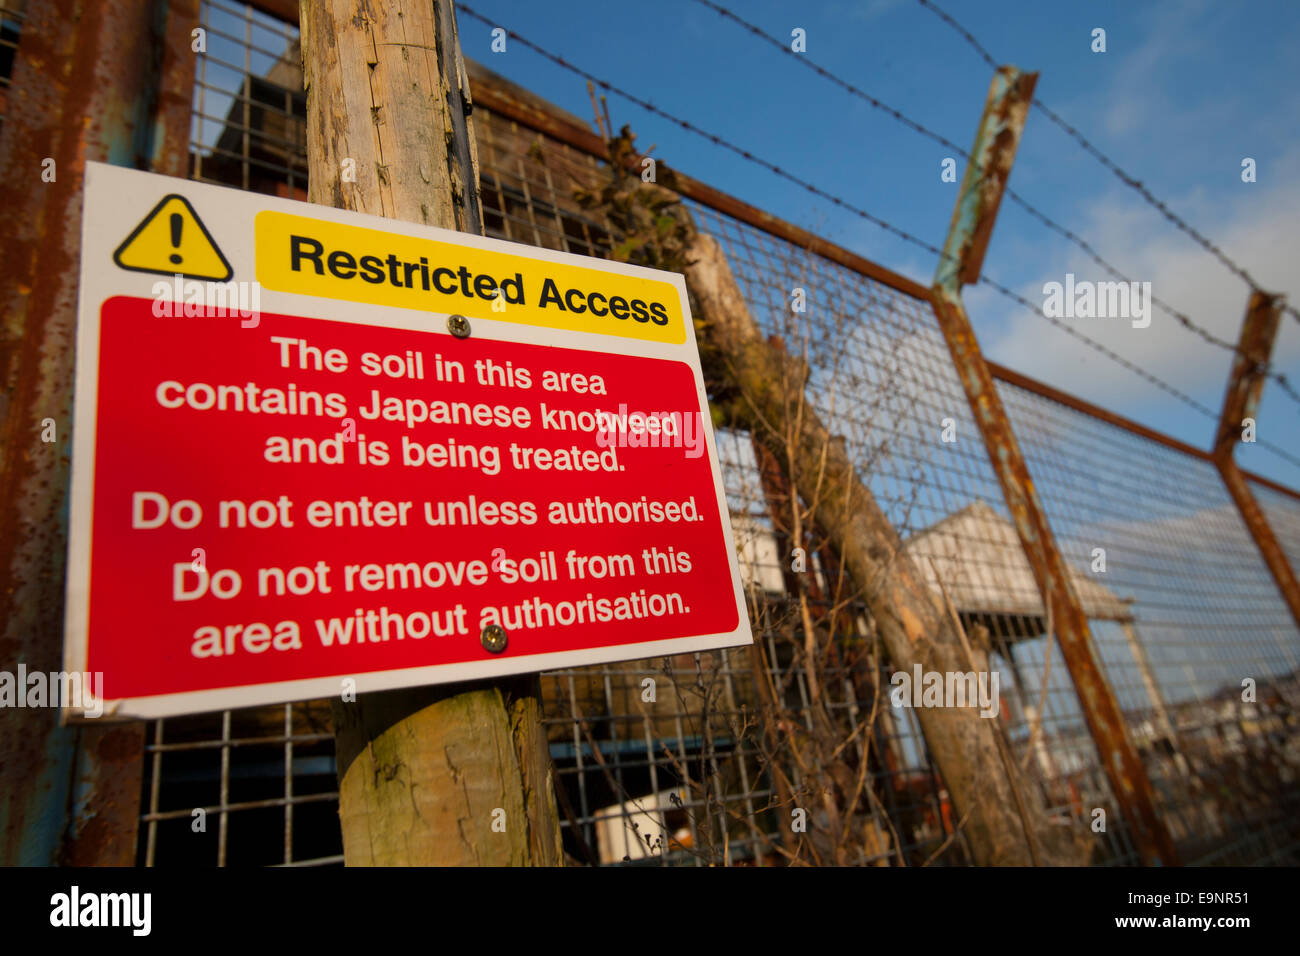 chemical pesticide spray spraying contamination soil permission Restricted Access sign Japanese Knotweed treatment - Stock Image